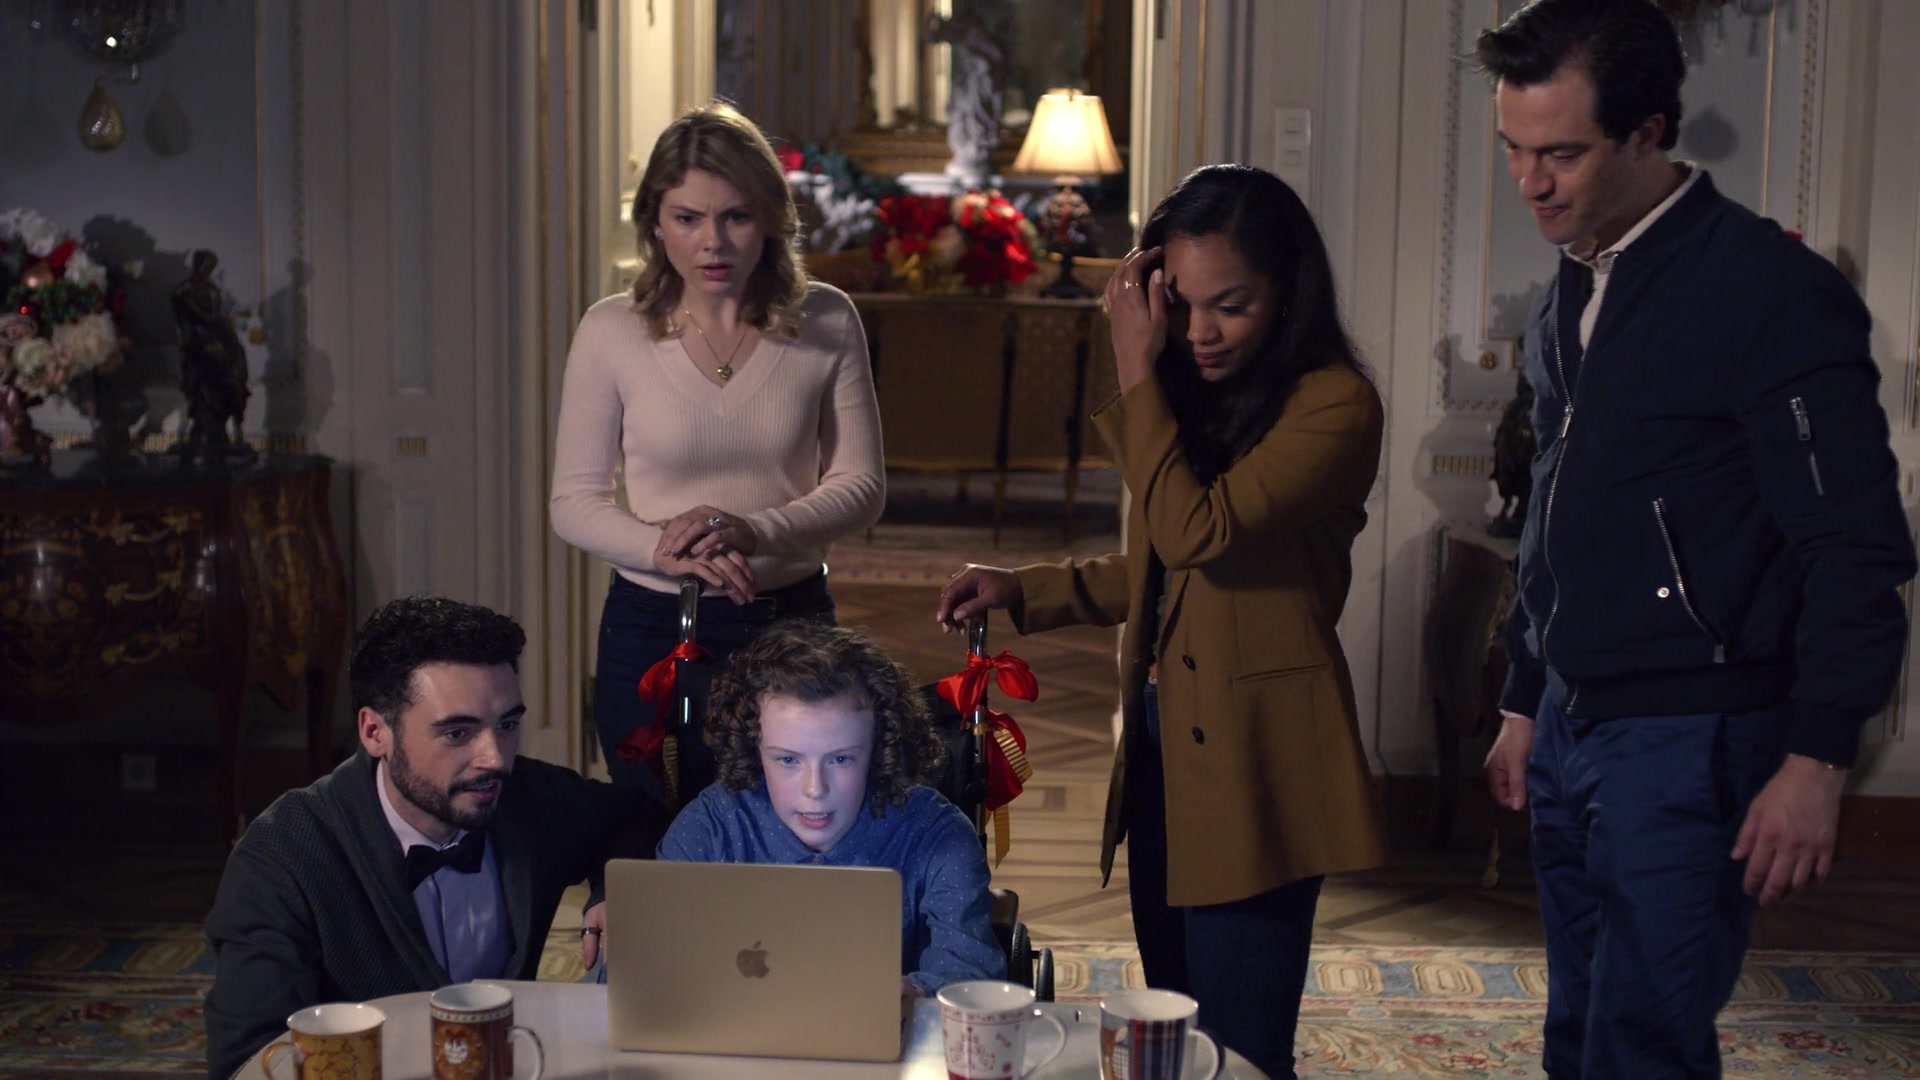 apple macbook laptop used by billy angel in a christmas prince the royal wedding 2018 movie. Black Bedroom Furniture Sets. Home Design Ideas